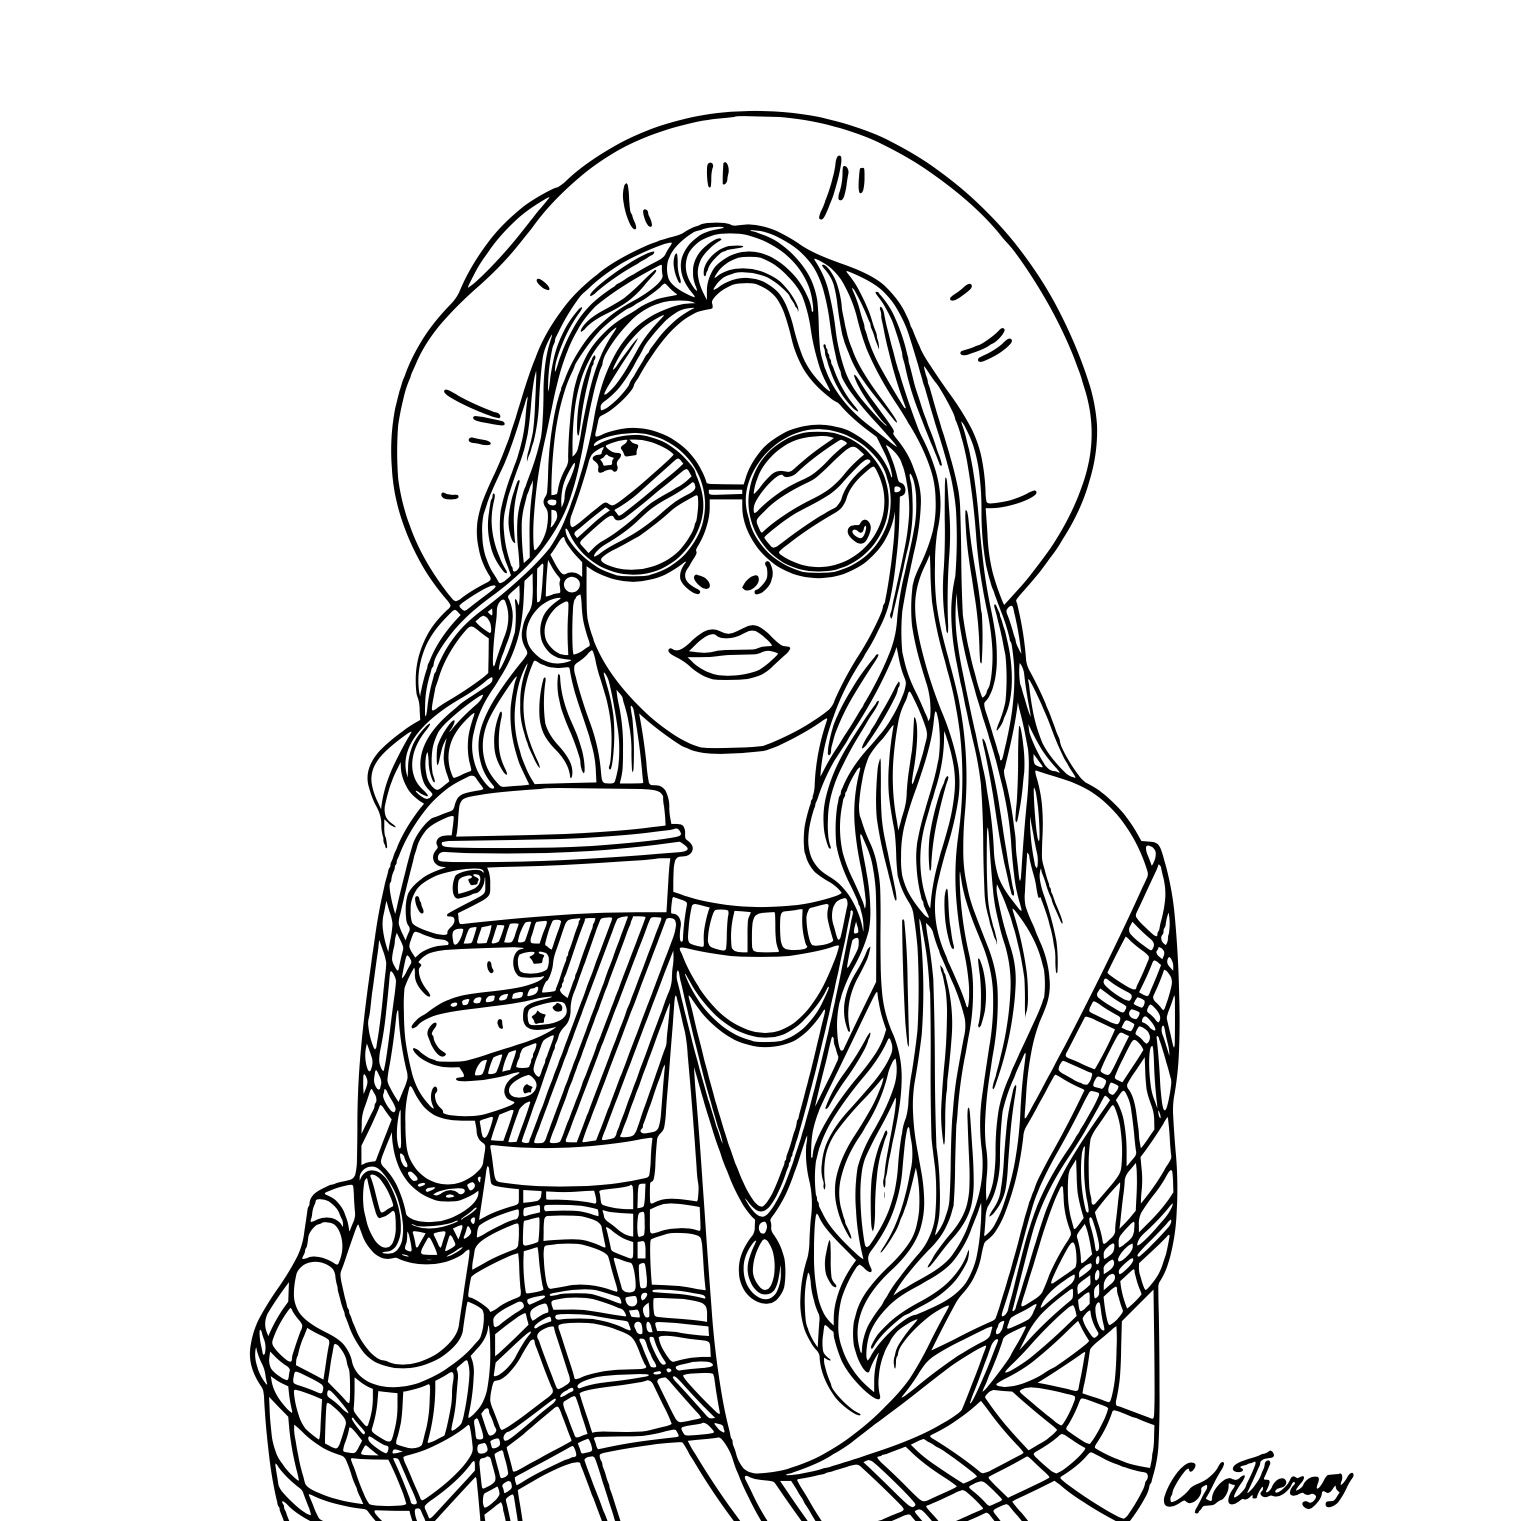 coloring pages of people pin by desiree on hair bow people coloring pages cute people of pages coloring